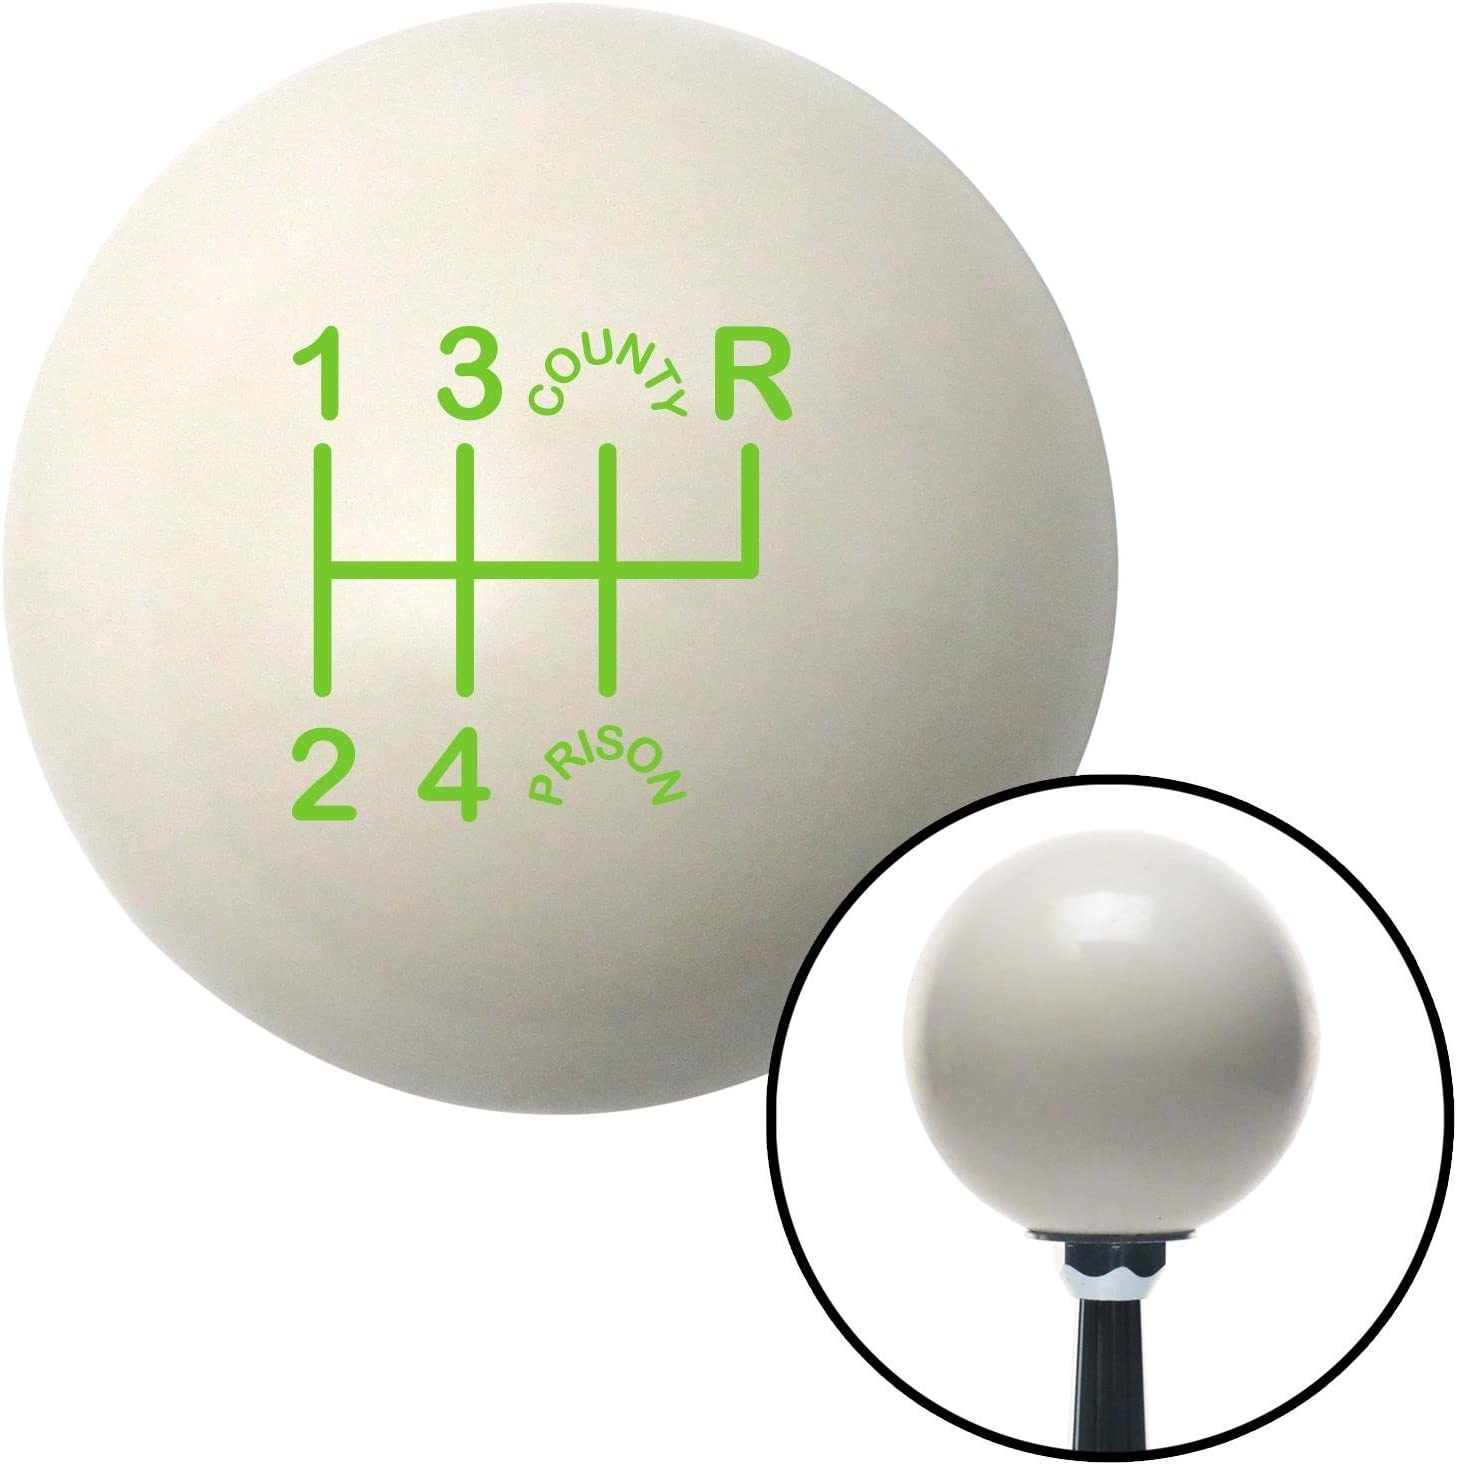 Green Shift Pattern CP26n American Shifter 76943 Ivory Shift Knob with M16 x 1.5 Insert